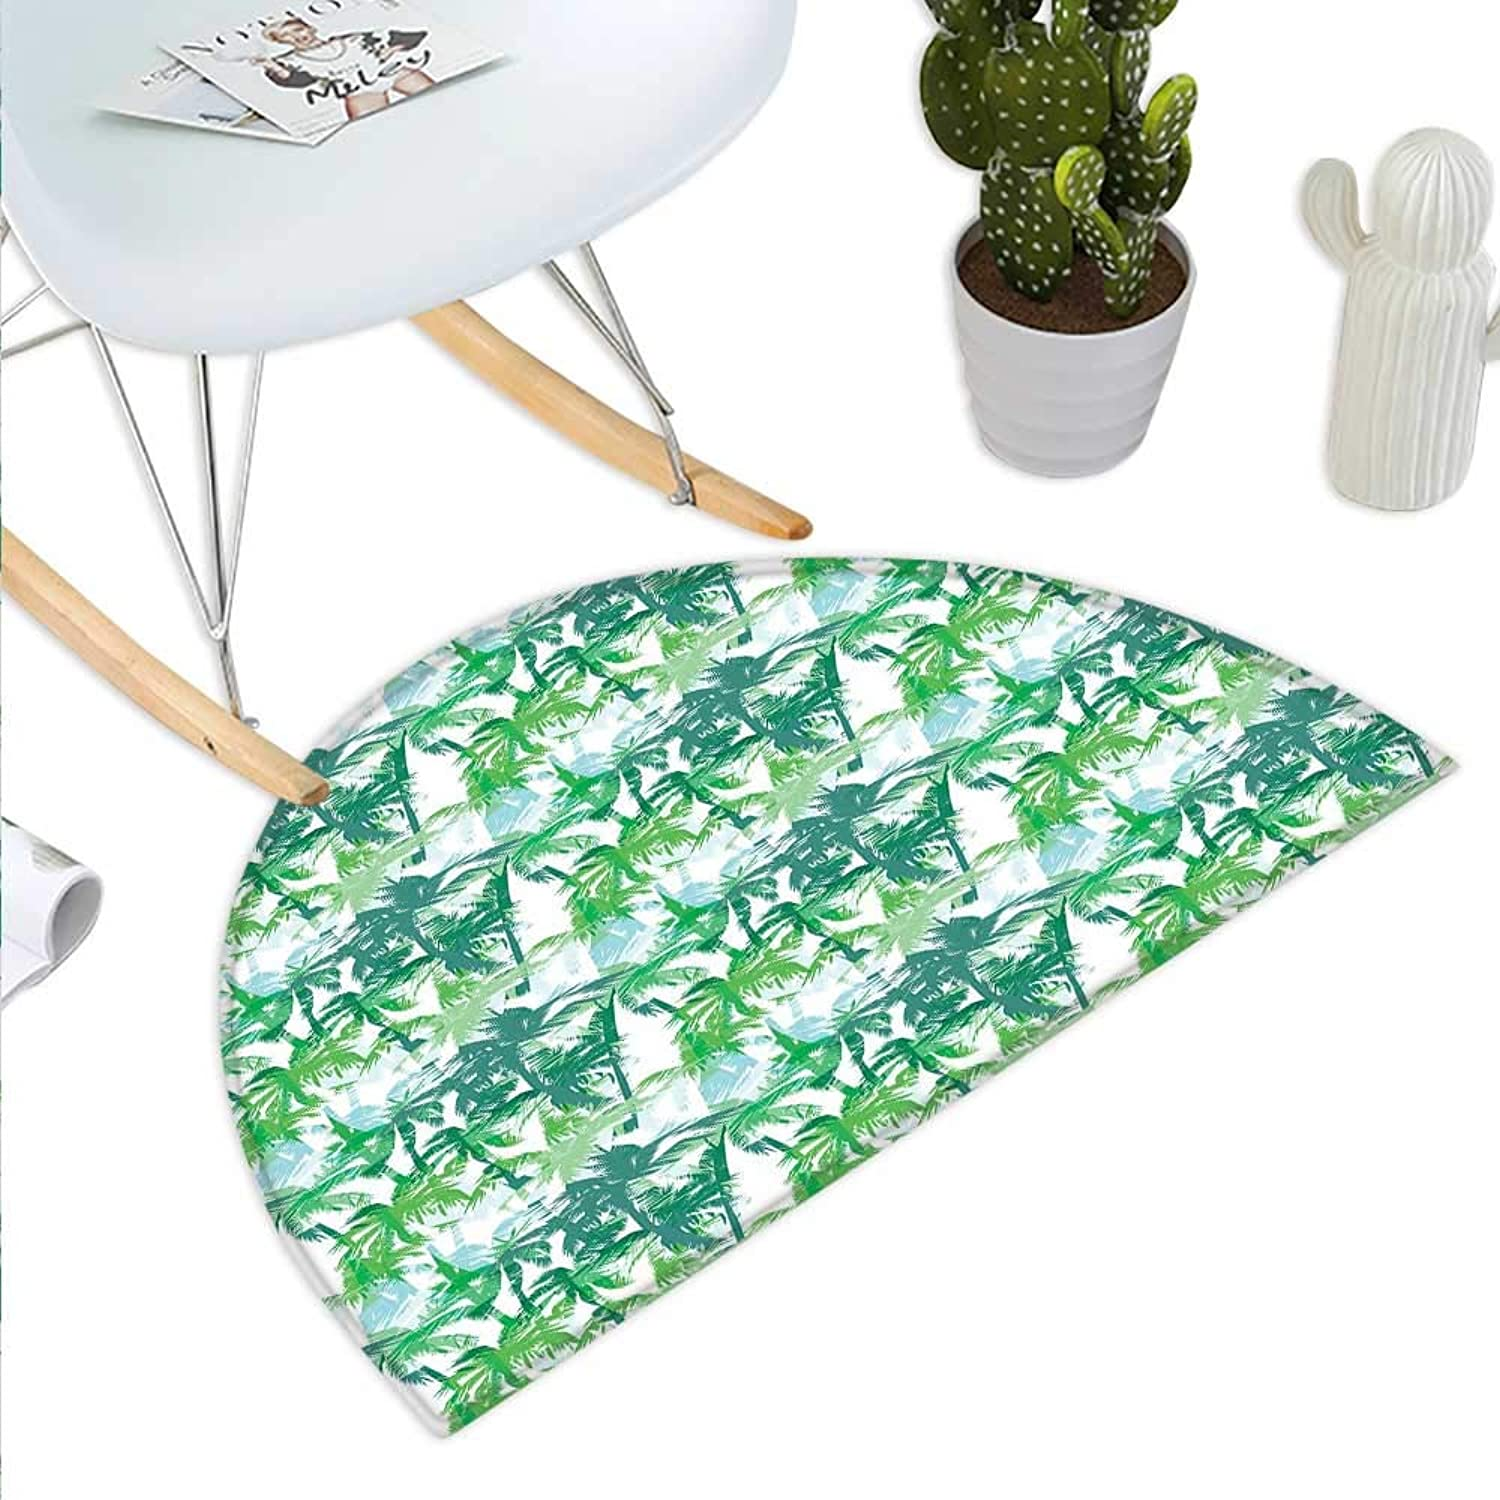 Palm Leaf Semicircle Doormat Exotic Fantasy Abstract Coconut Tree Silhouettes Green Jungle Halfmoon doormats H 43.3  xD 64.9  Forest Green Lime Green White